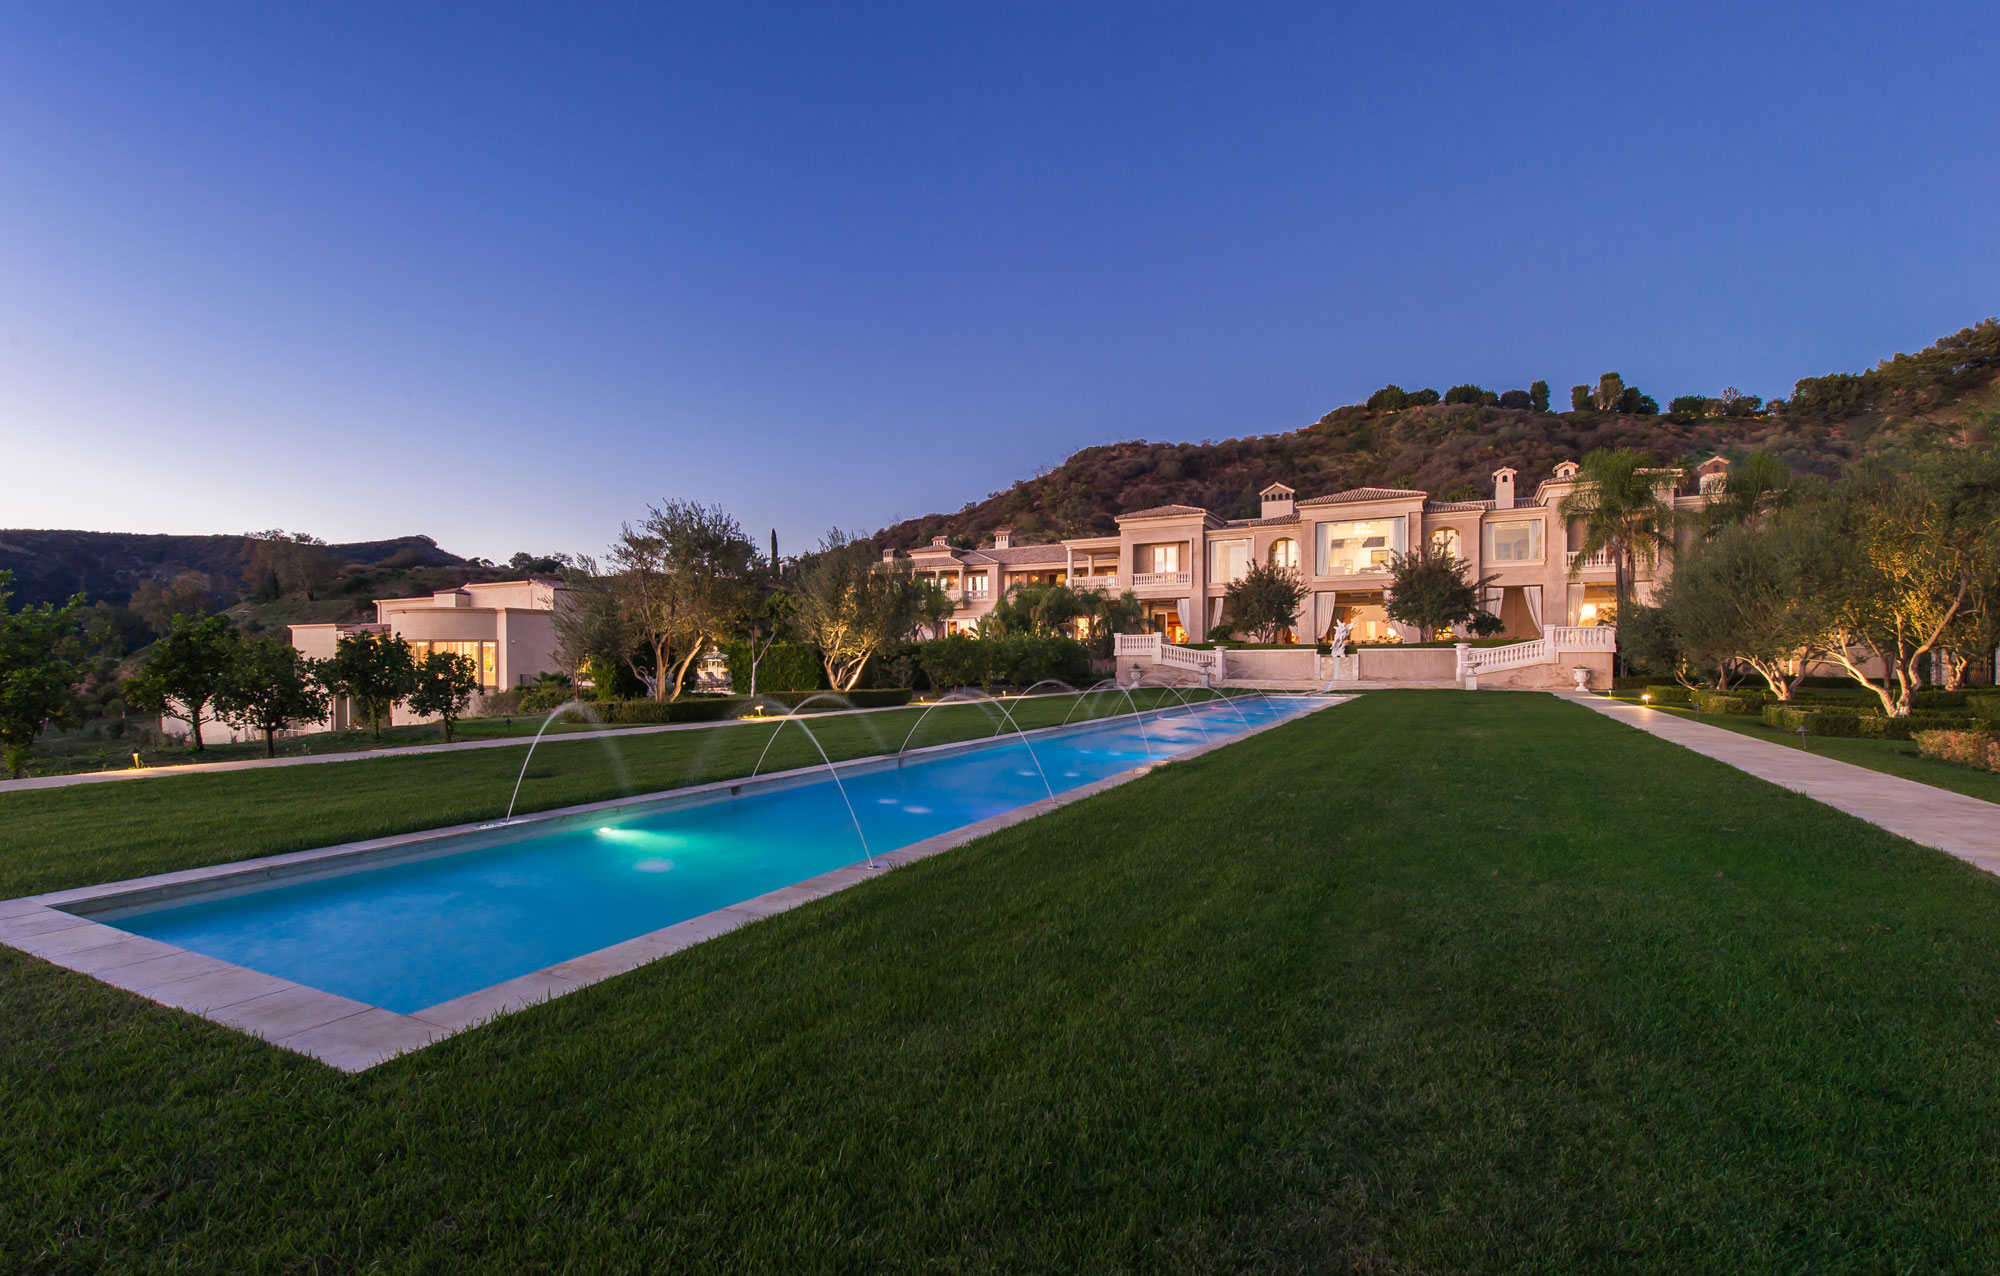 Most expensive home in the U.S. lists for $195M (Photos)